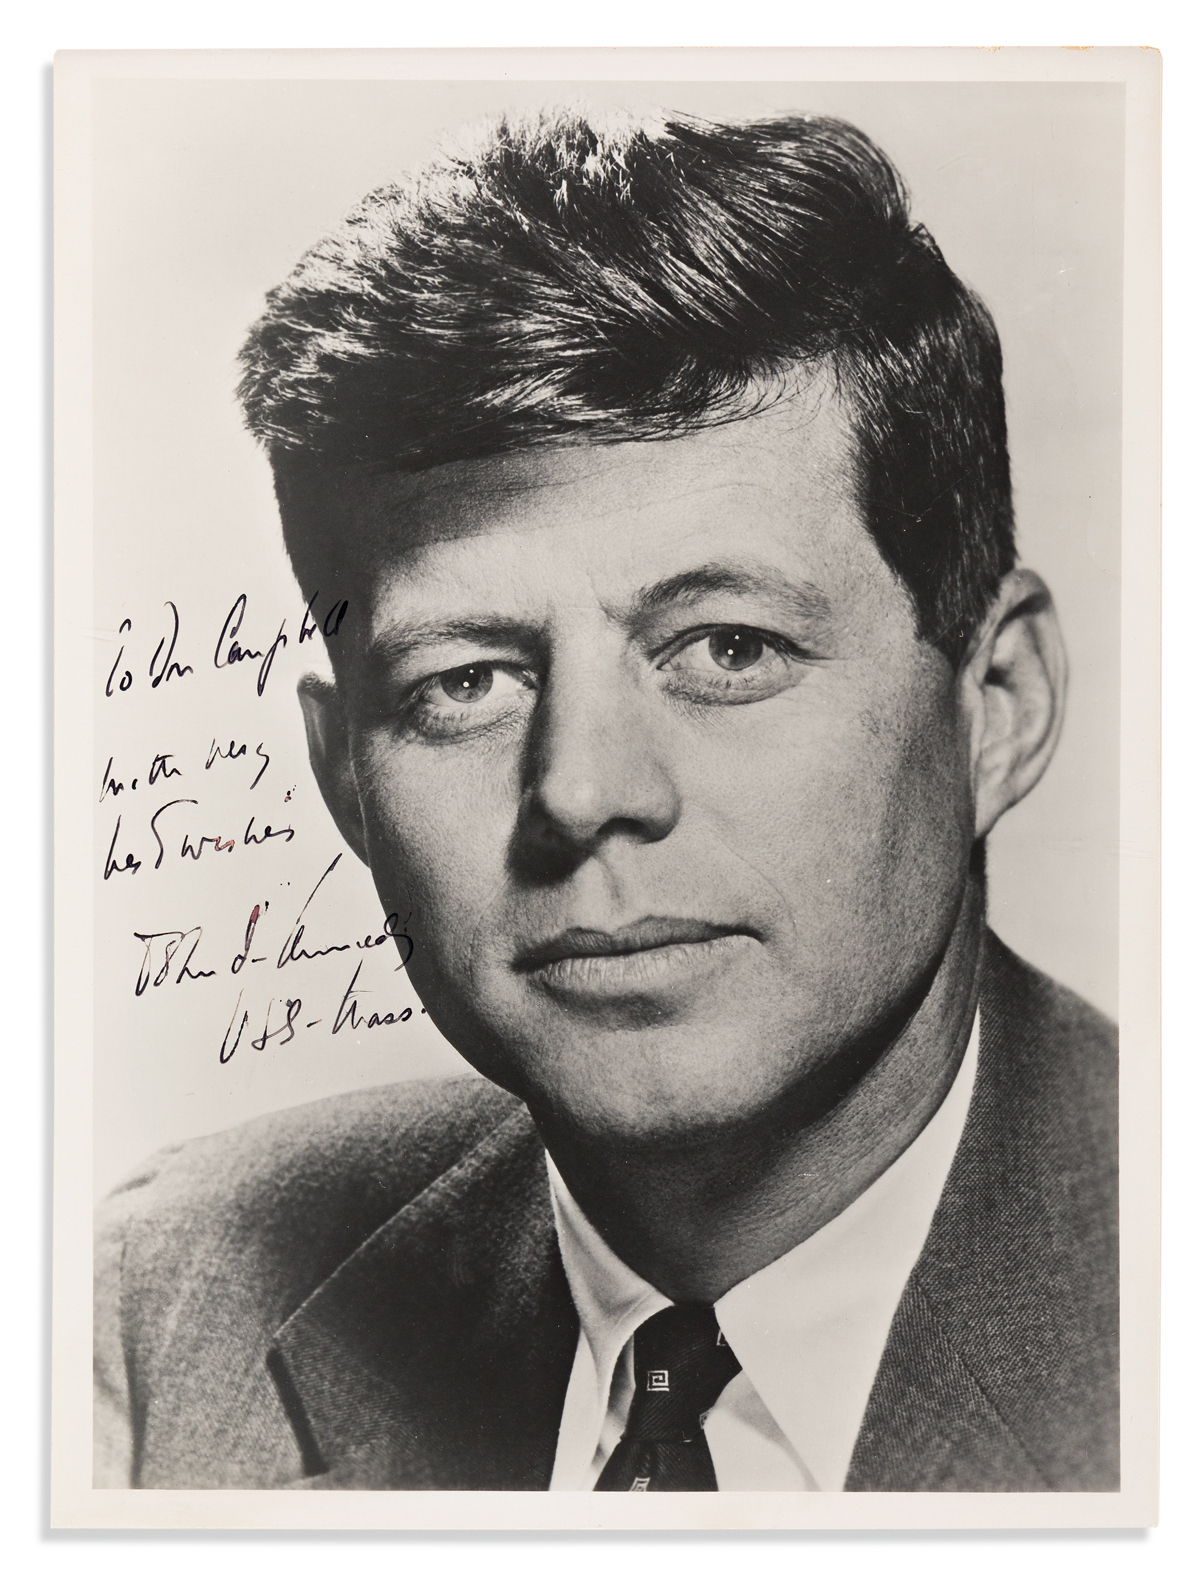 KENNEDY, JOHN F. Photograph Signed and Inscribed, as Senator, To Don Campbell / with very / best wishes / John F. Kennedy / USS-Mass,